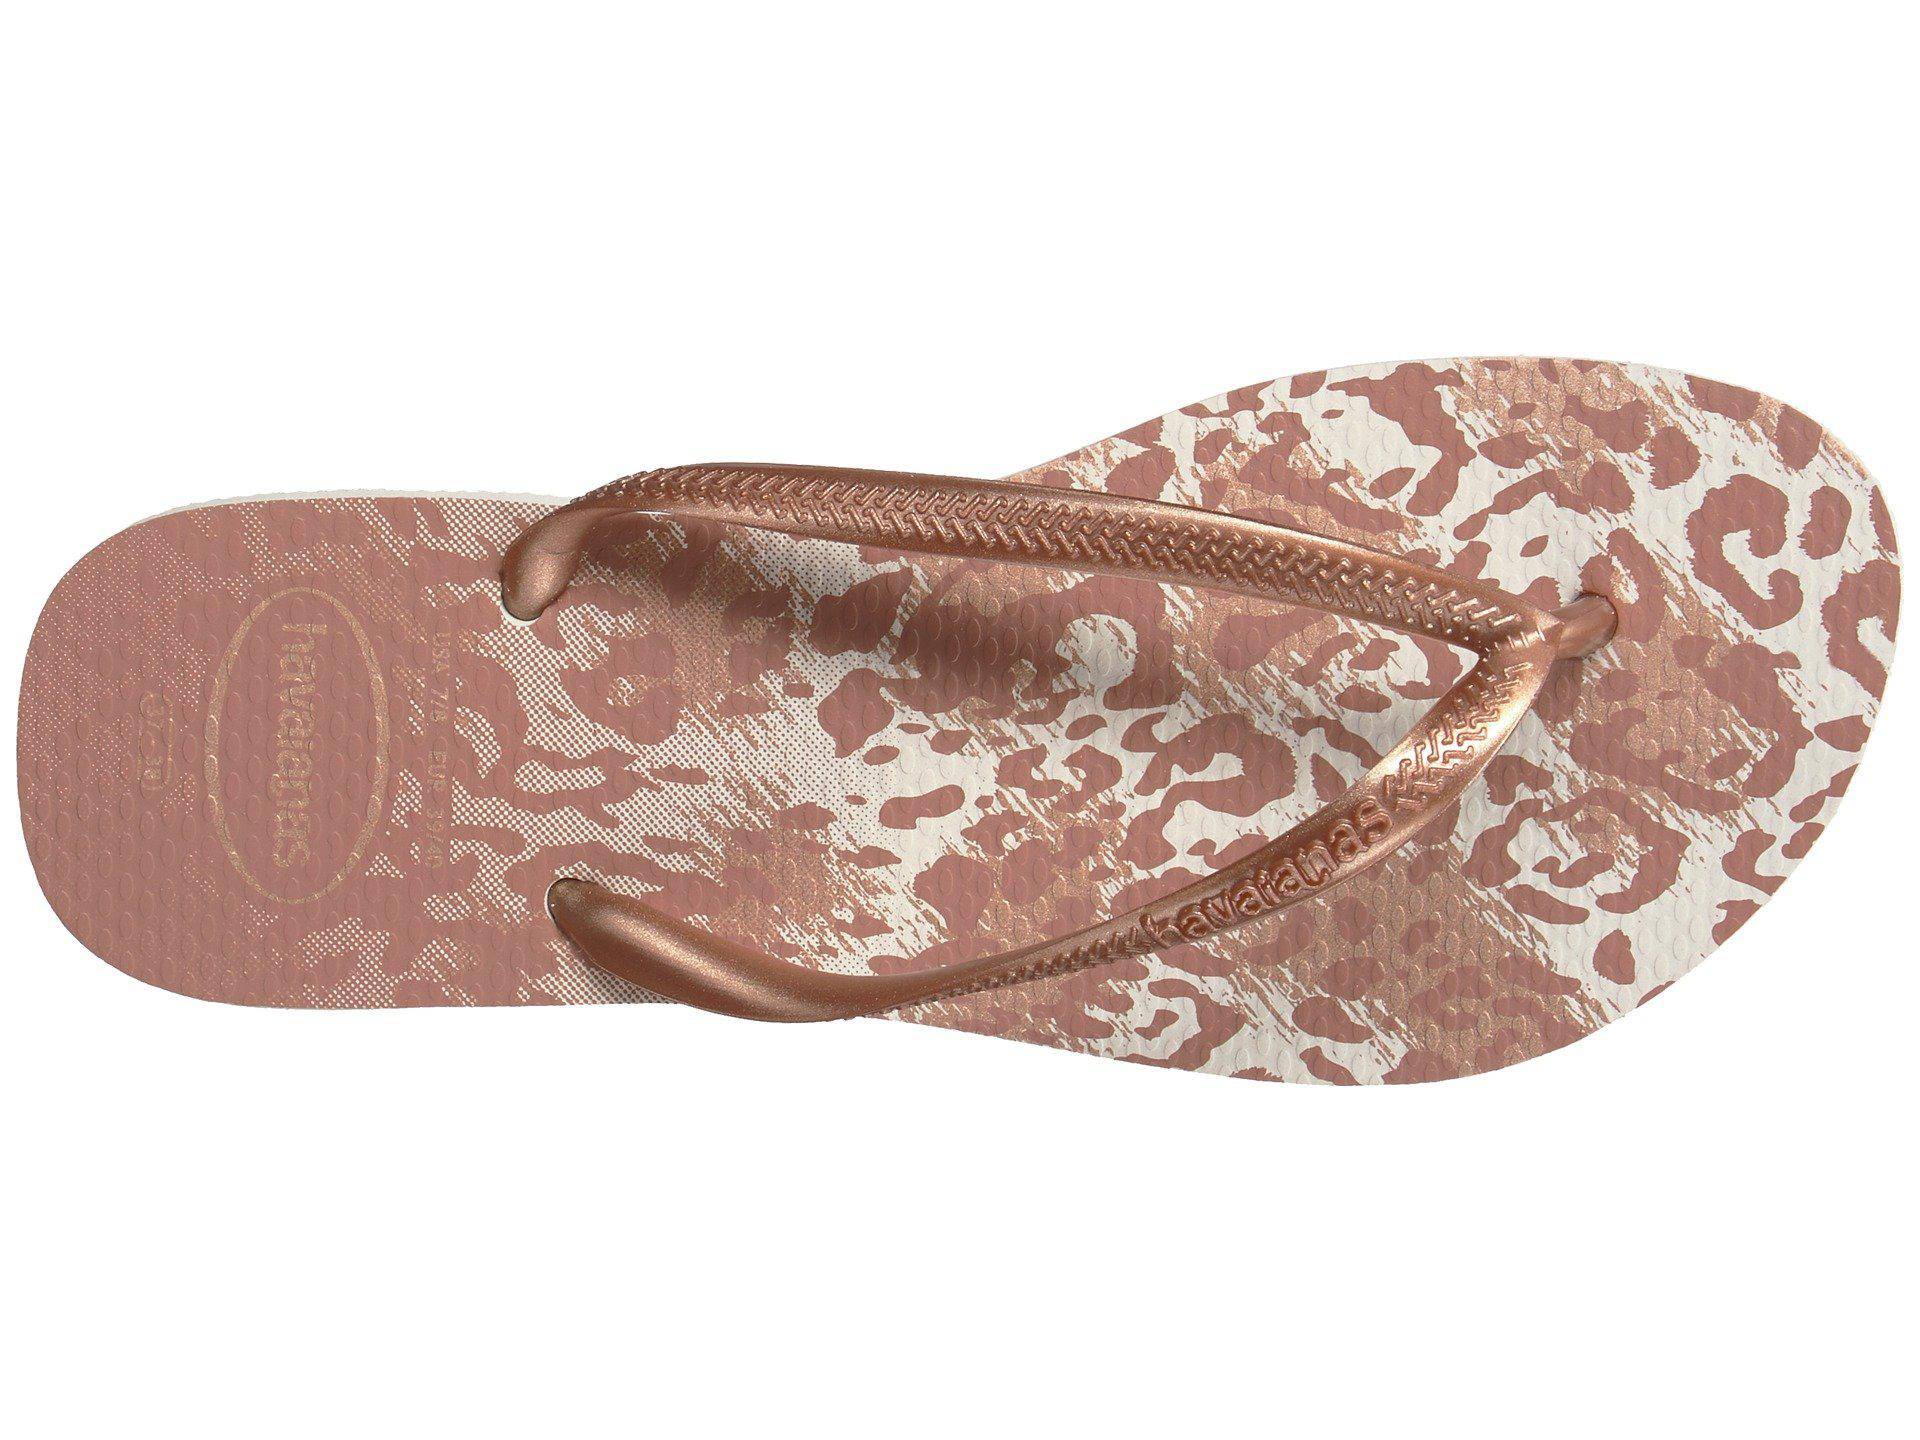 8de3836a9d8f Lyst - Havaianas Slim Animals Flip Flops (white golden Blush ...